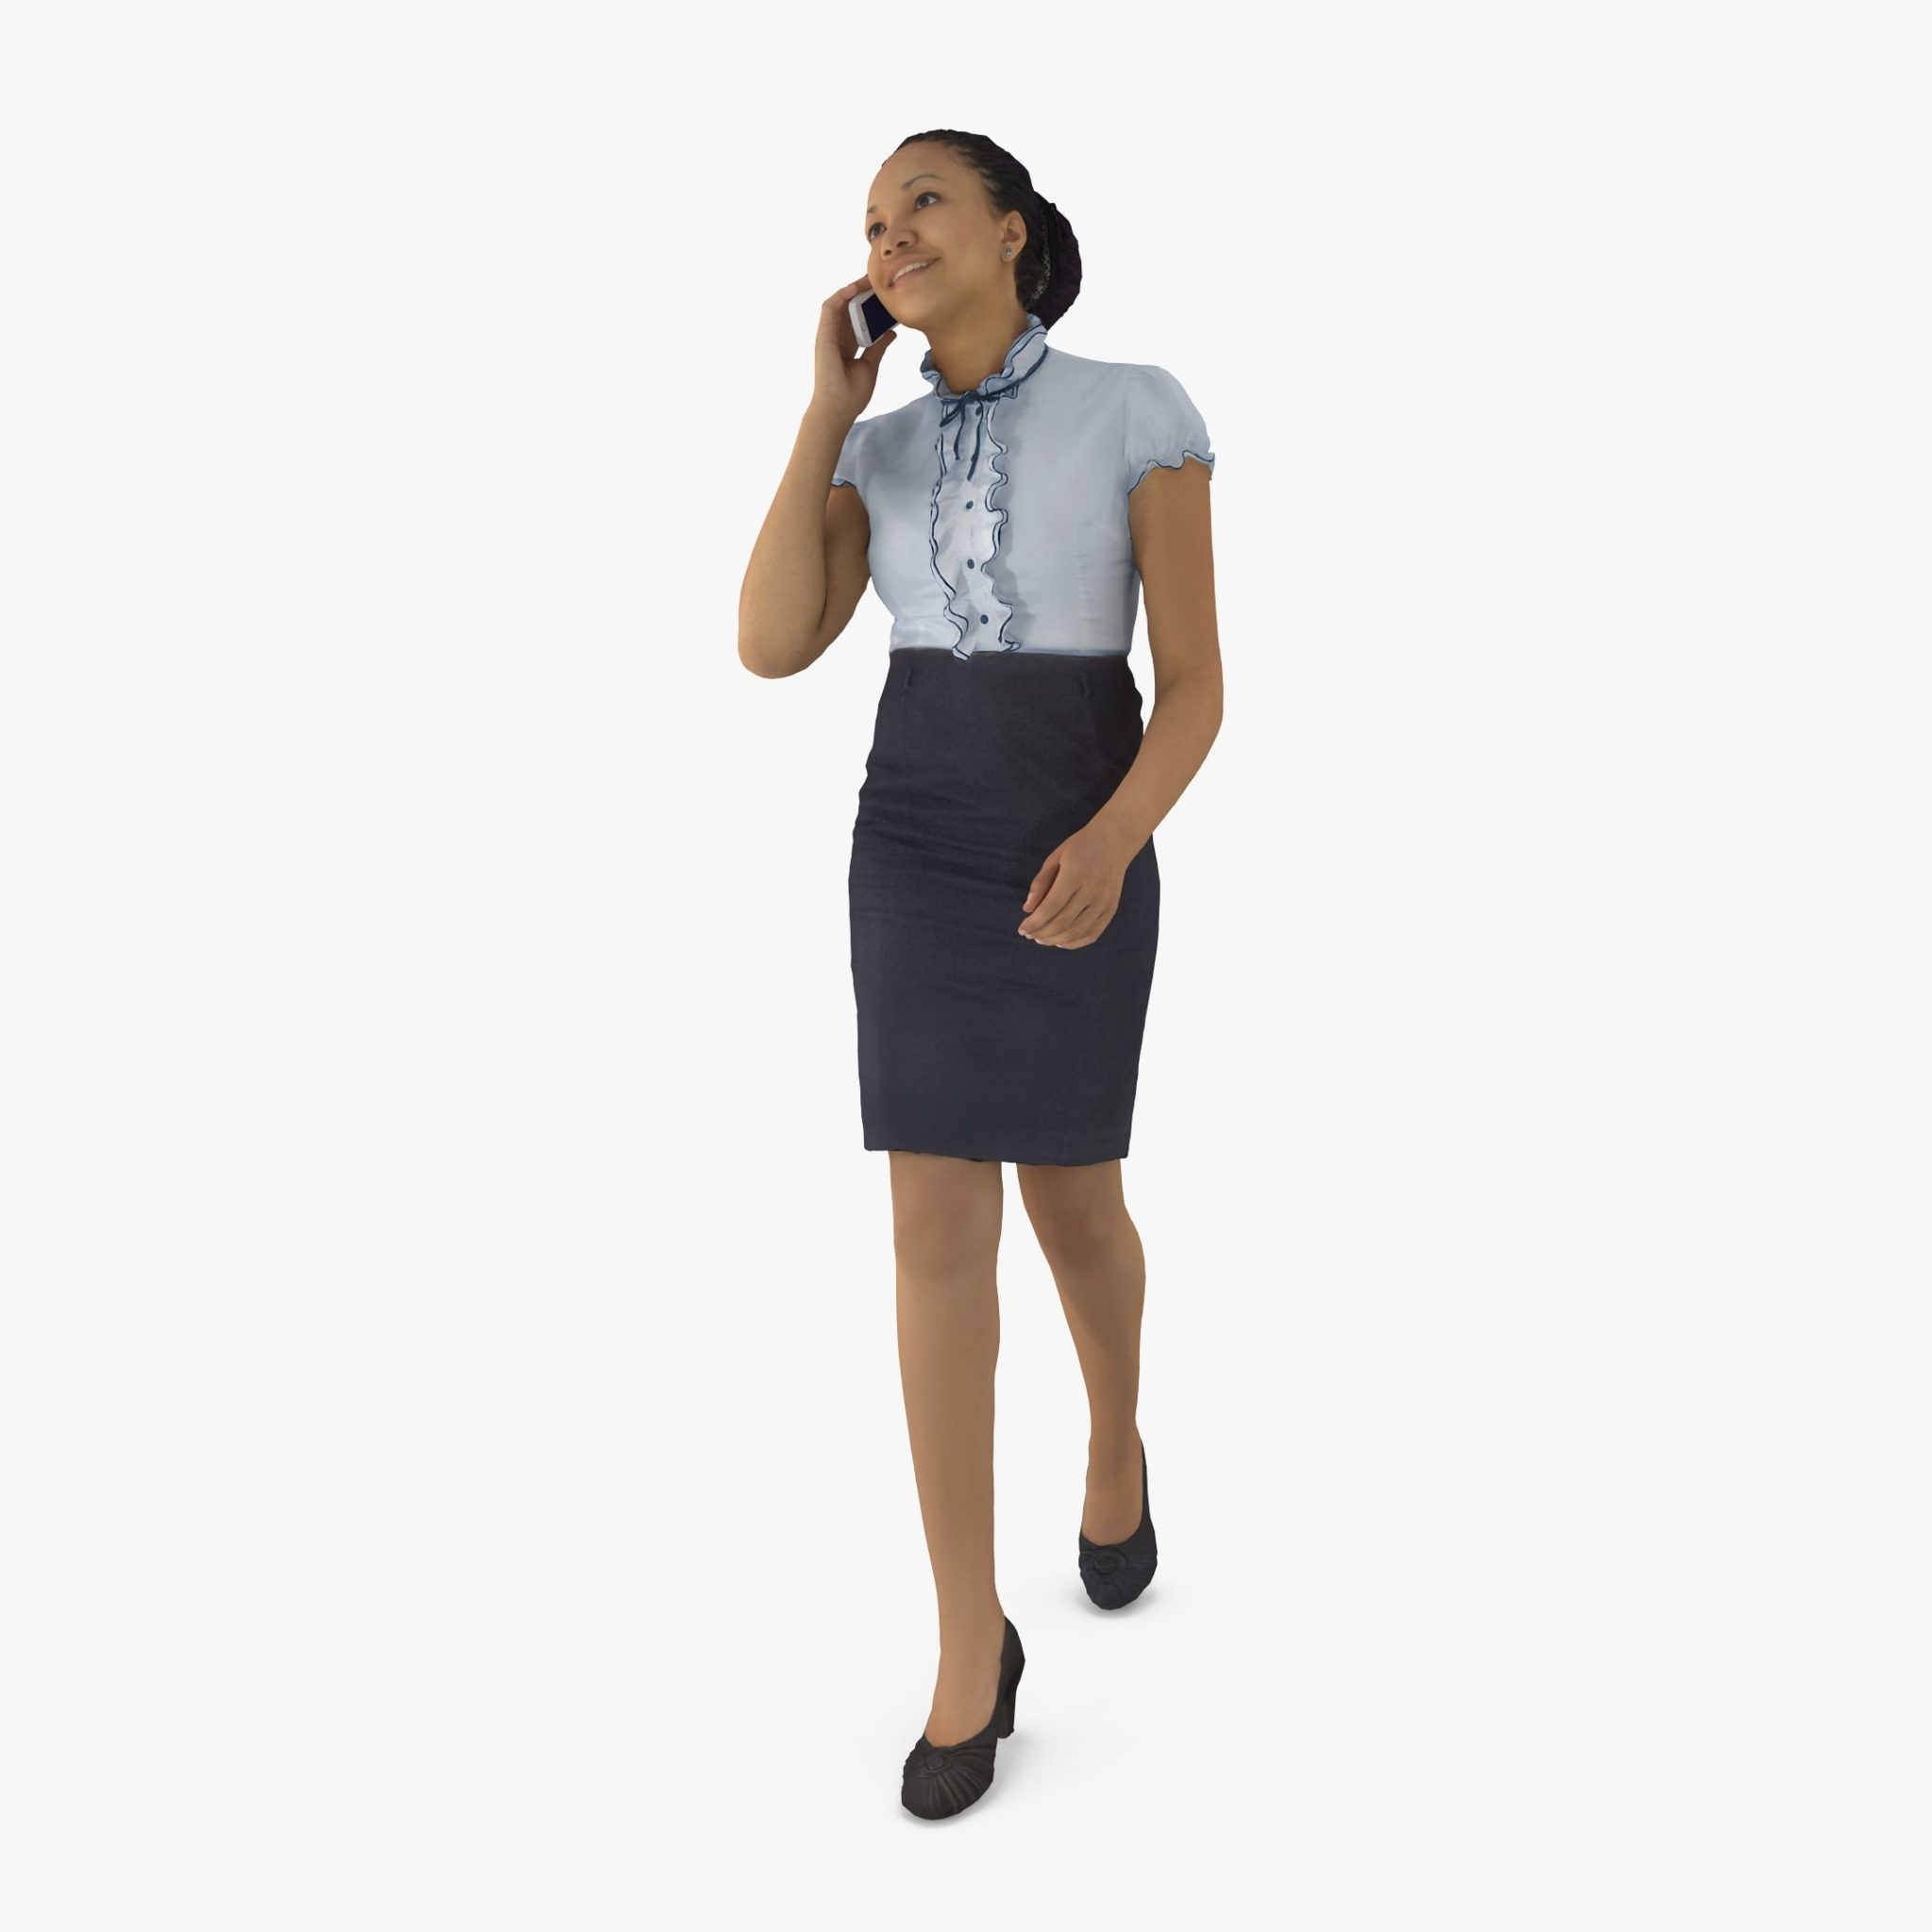 Happy Business Woman 3D Model | 3DTree Scanning Studio